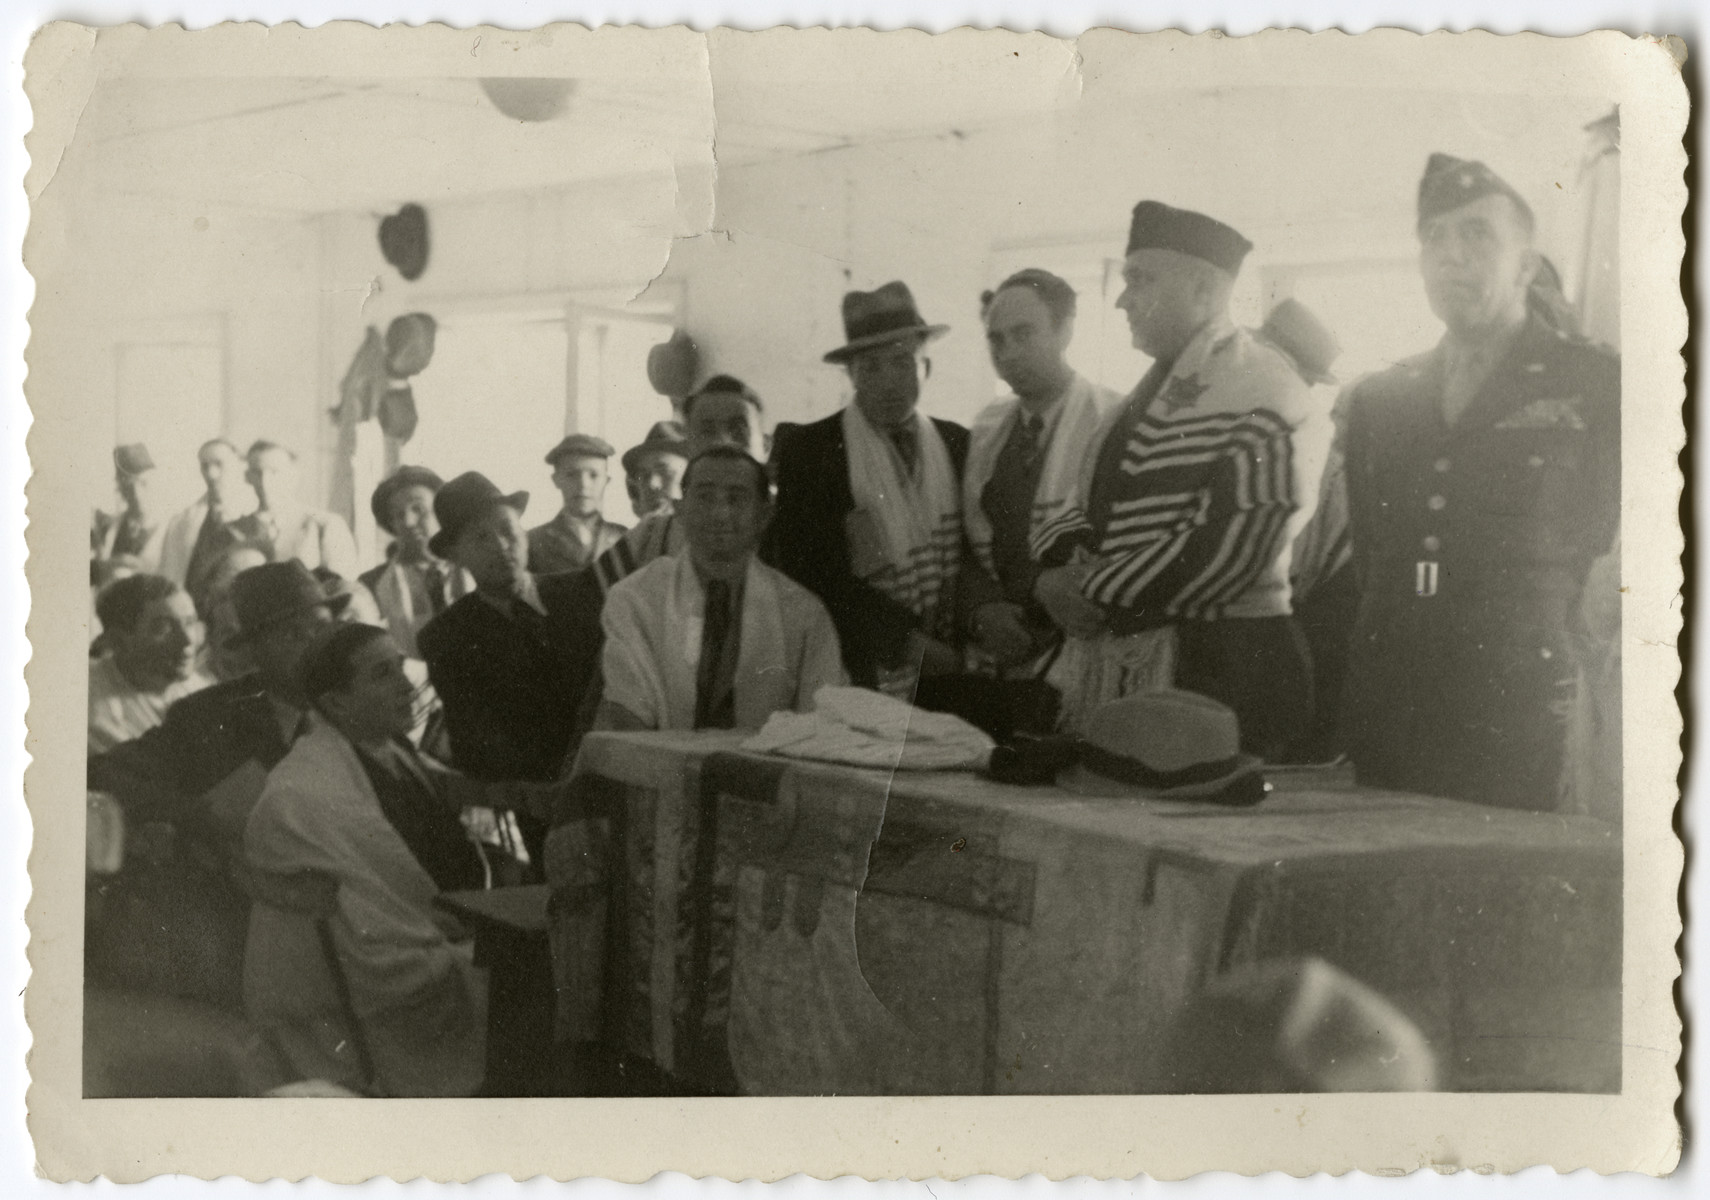 Rabbi Harold Fishbein conducts a religious service in the Schlachtensee synagogue.  He has a Jewish star sewn onto his tallit.